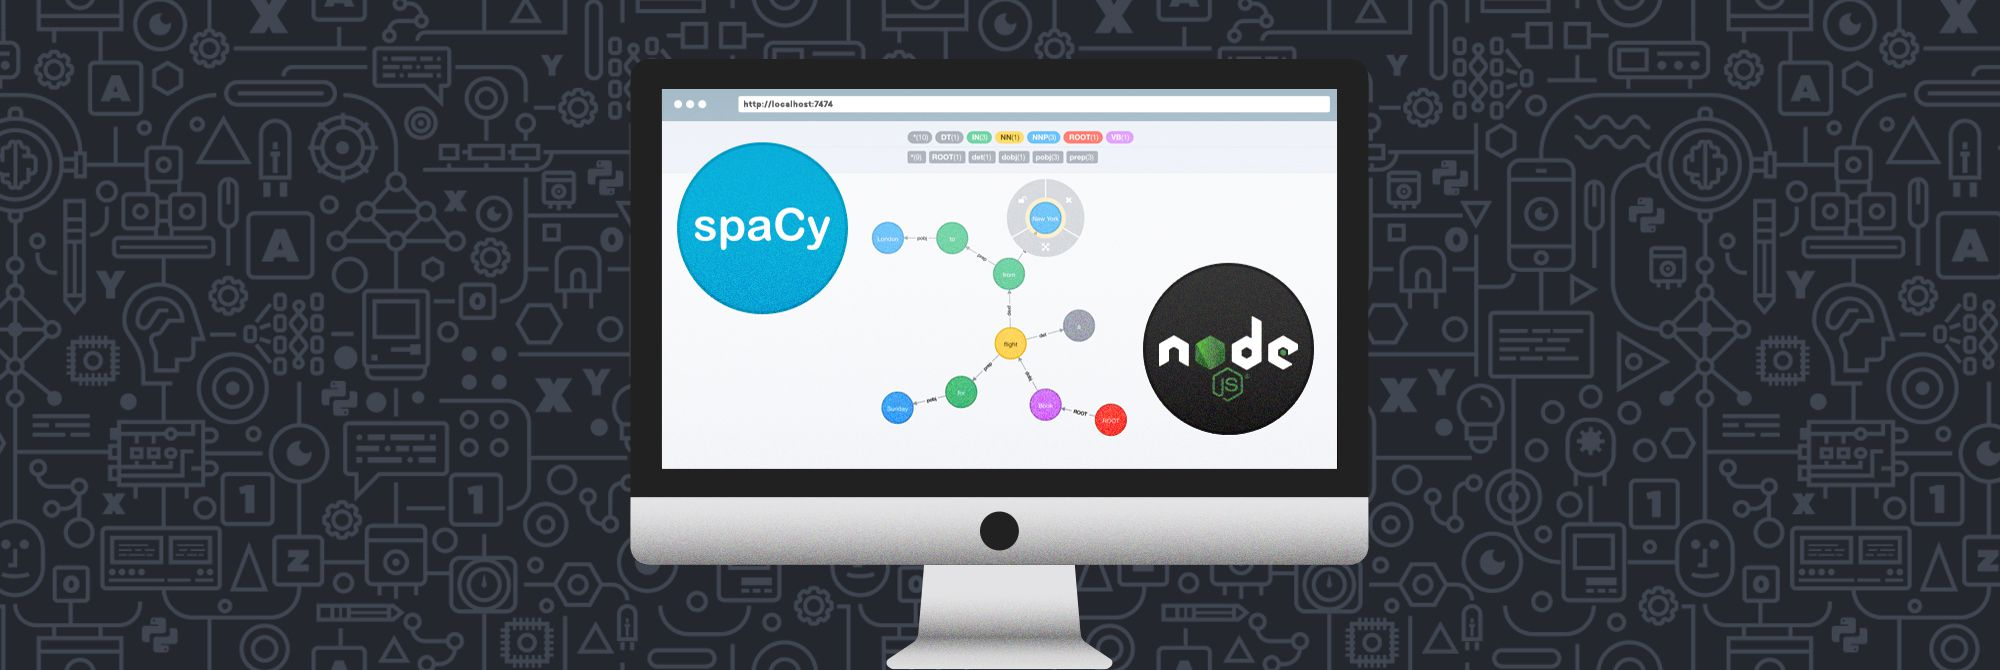 Building your bot's brain with Node.js and spaCy · Blog · Explosion